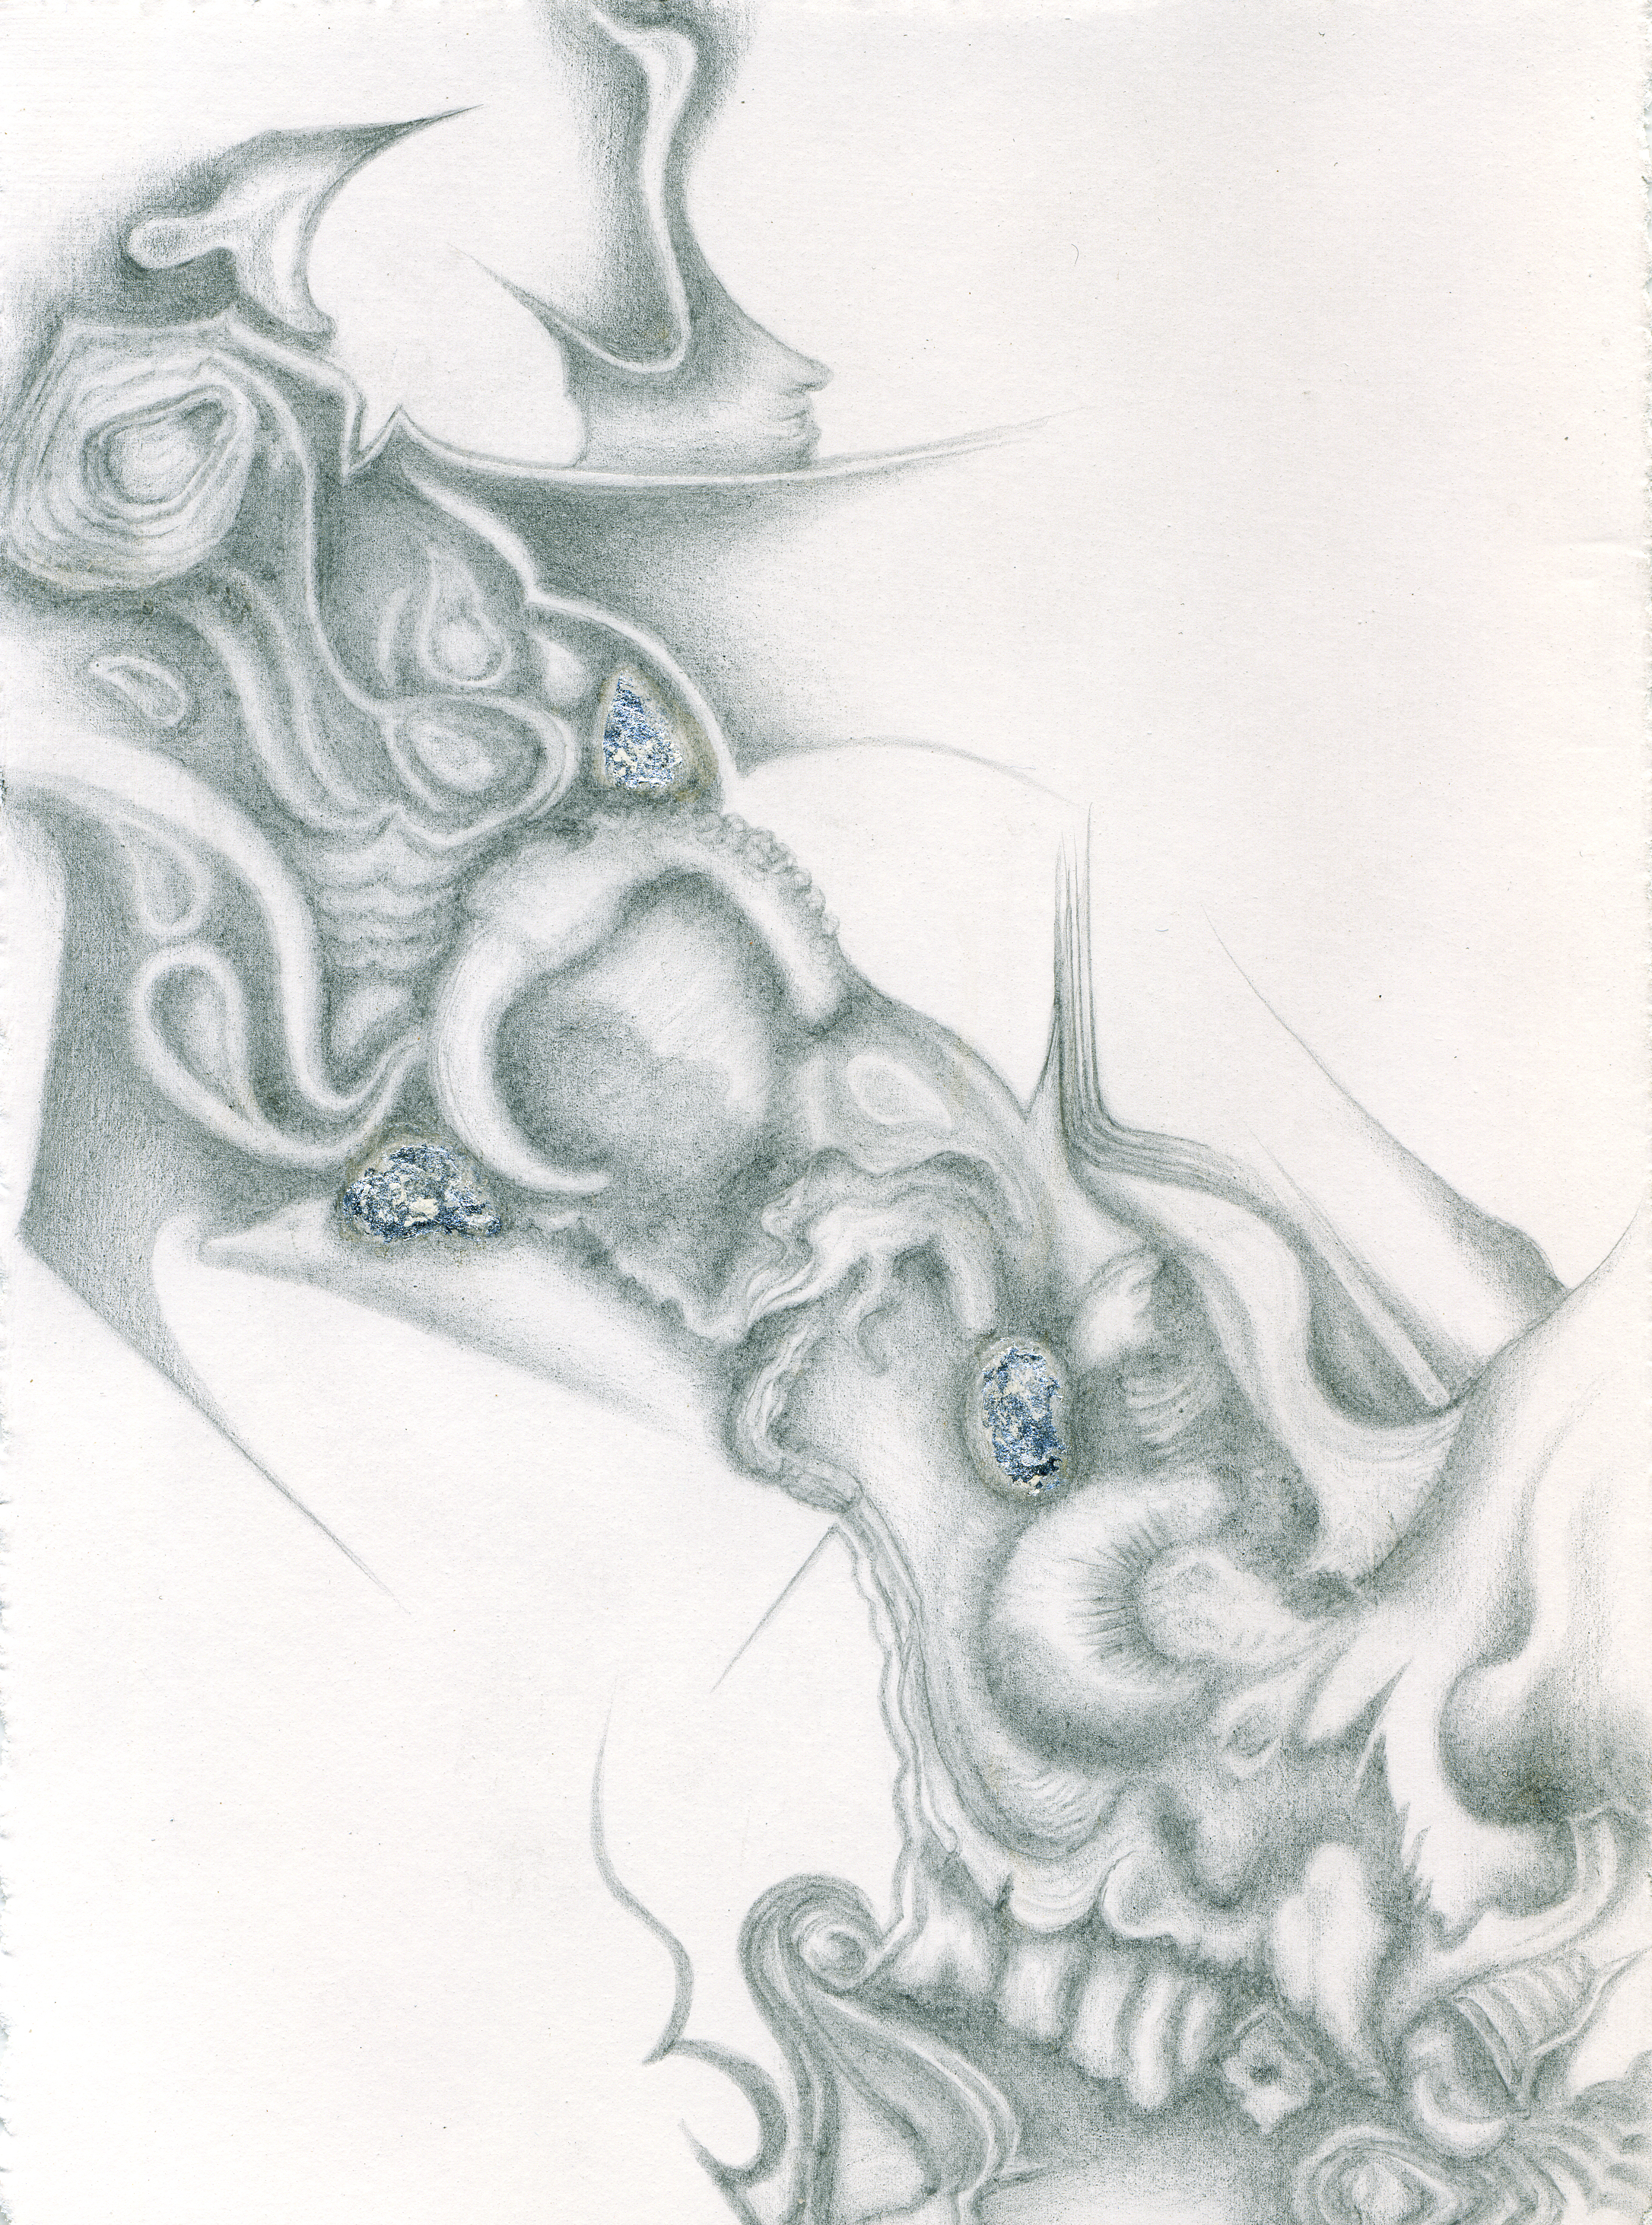 The Teeming Sea I, silverpoint - silver foil, Jeannine Cook artist